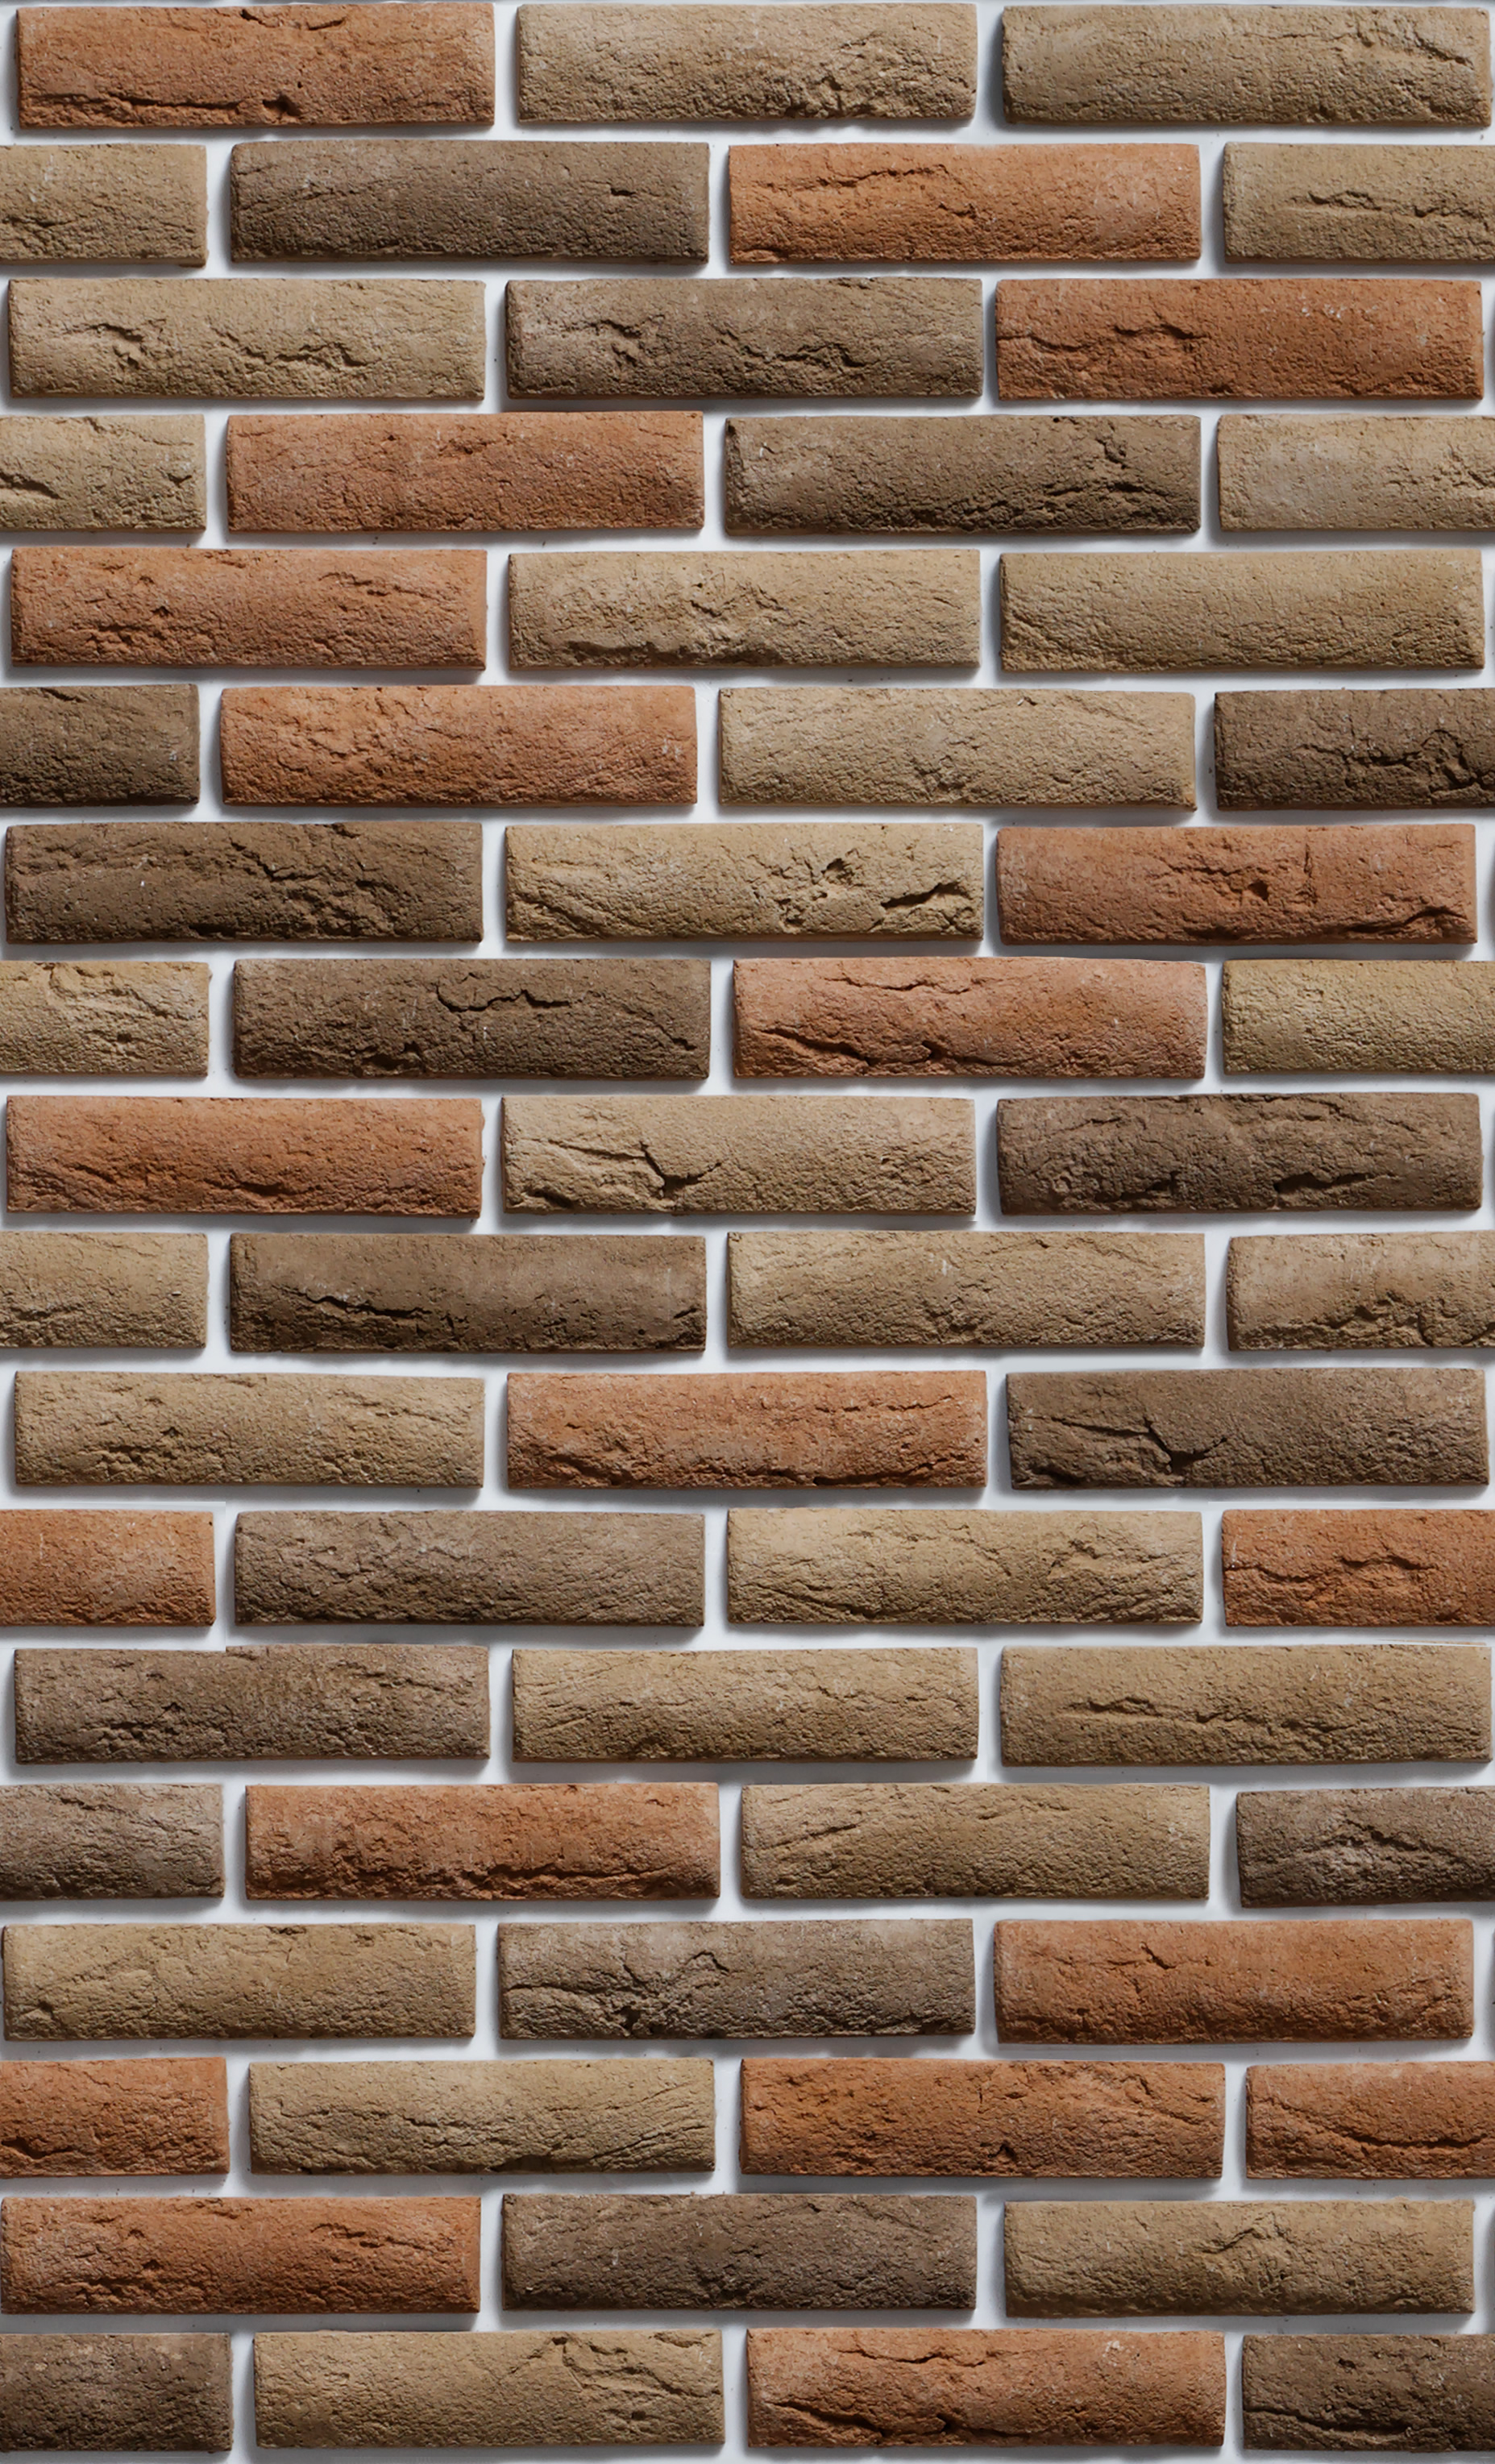 Brick Texture, Decorative Brick, Bricks, Texture, Download. Safari Wall Decor. Decorating App. Rooms For Rent Corpus Christi. Rooms For Rent In Indio Ca. Decorative File Storage. Porch Decoration. Decoration For Wedding. Monthly Rooms For Rent